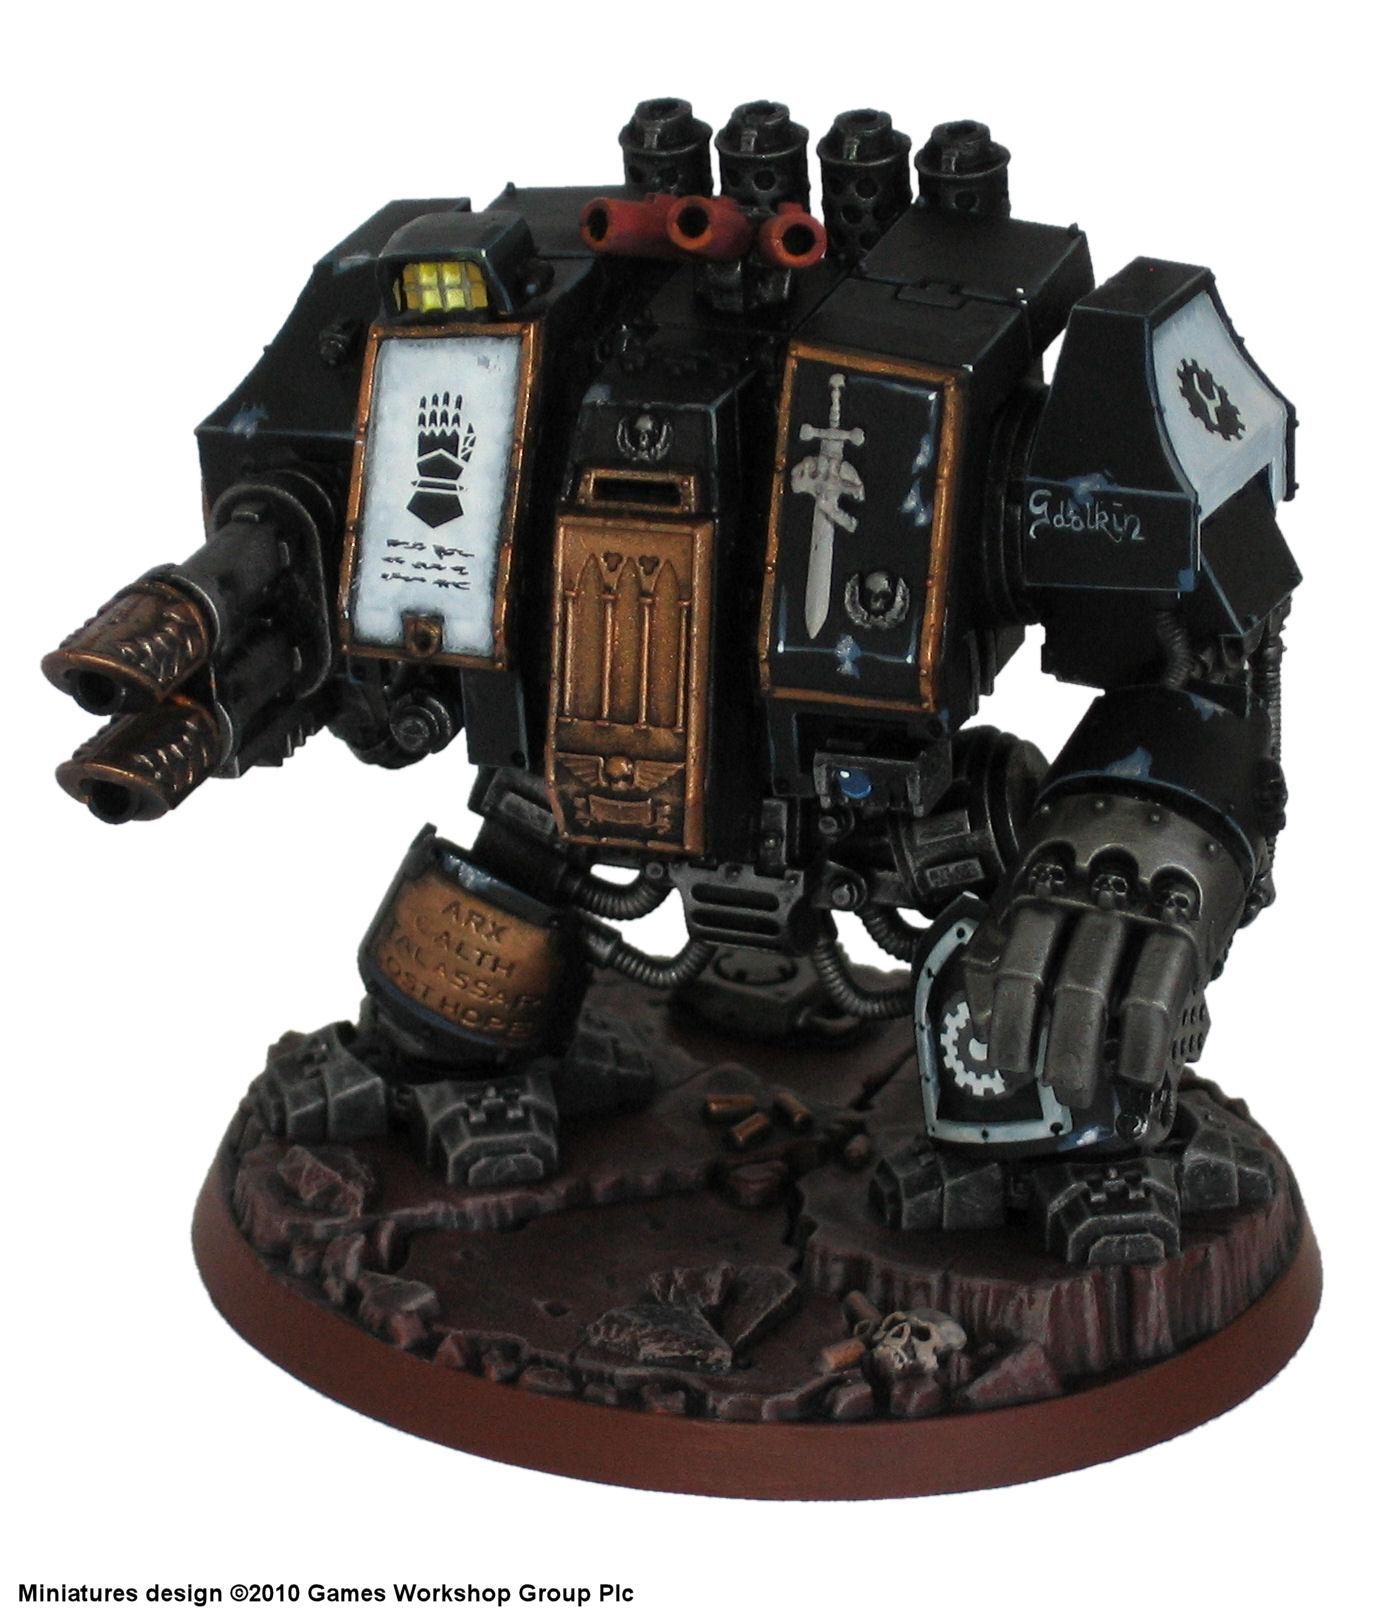 Dreadnought, Gdolkin, Hands, Iron, Science-fiction, Space, Space Marines, Venerable, Warhammer 40,000